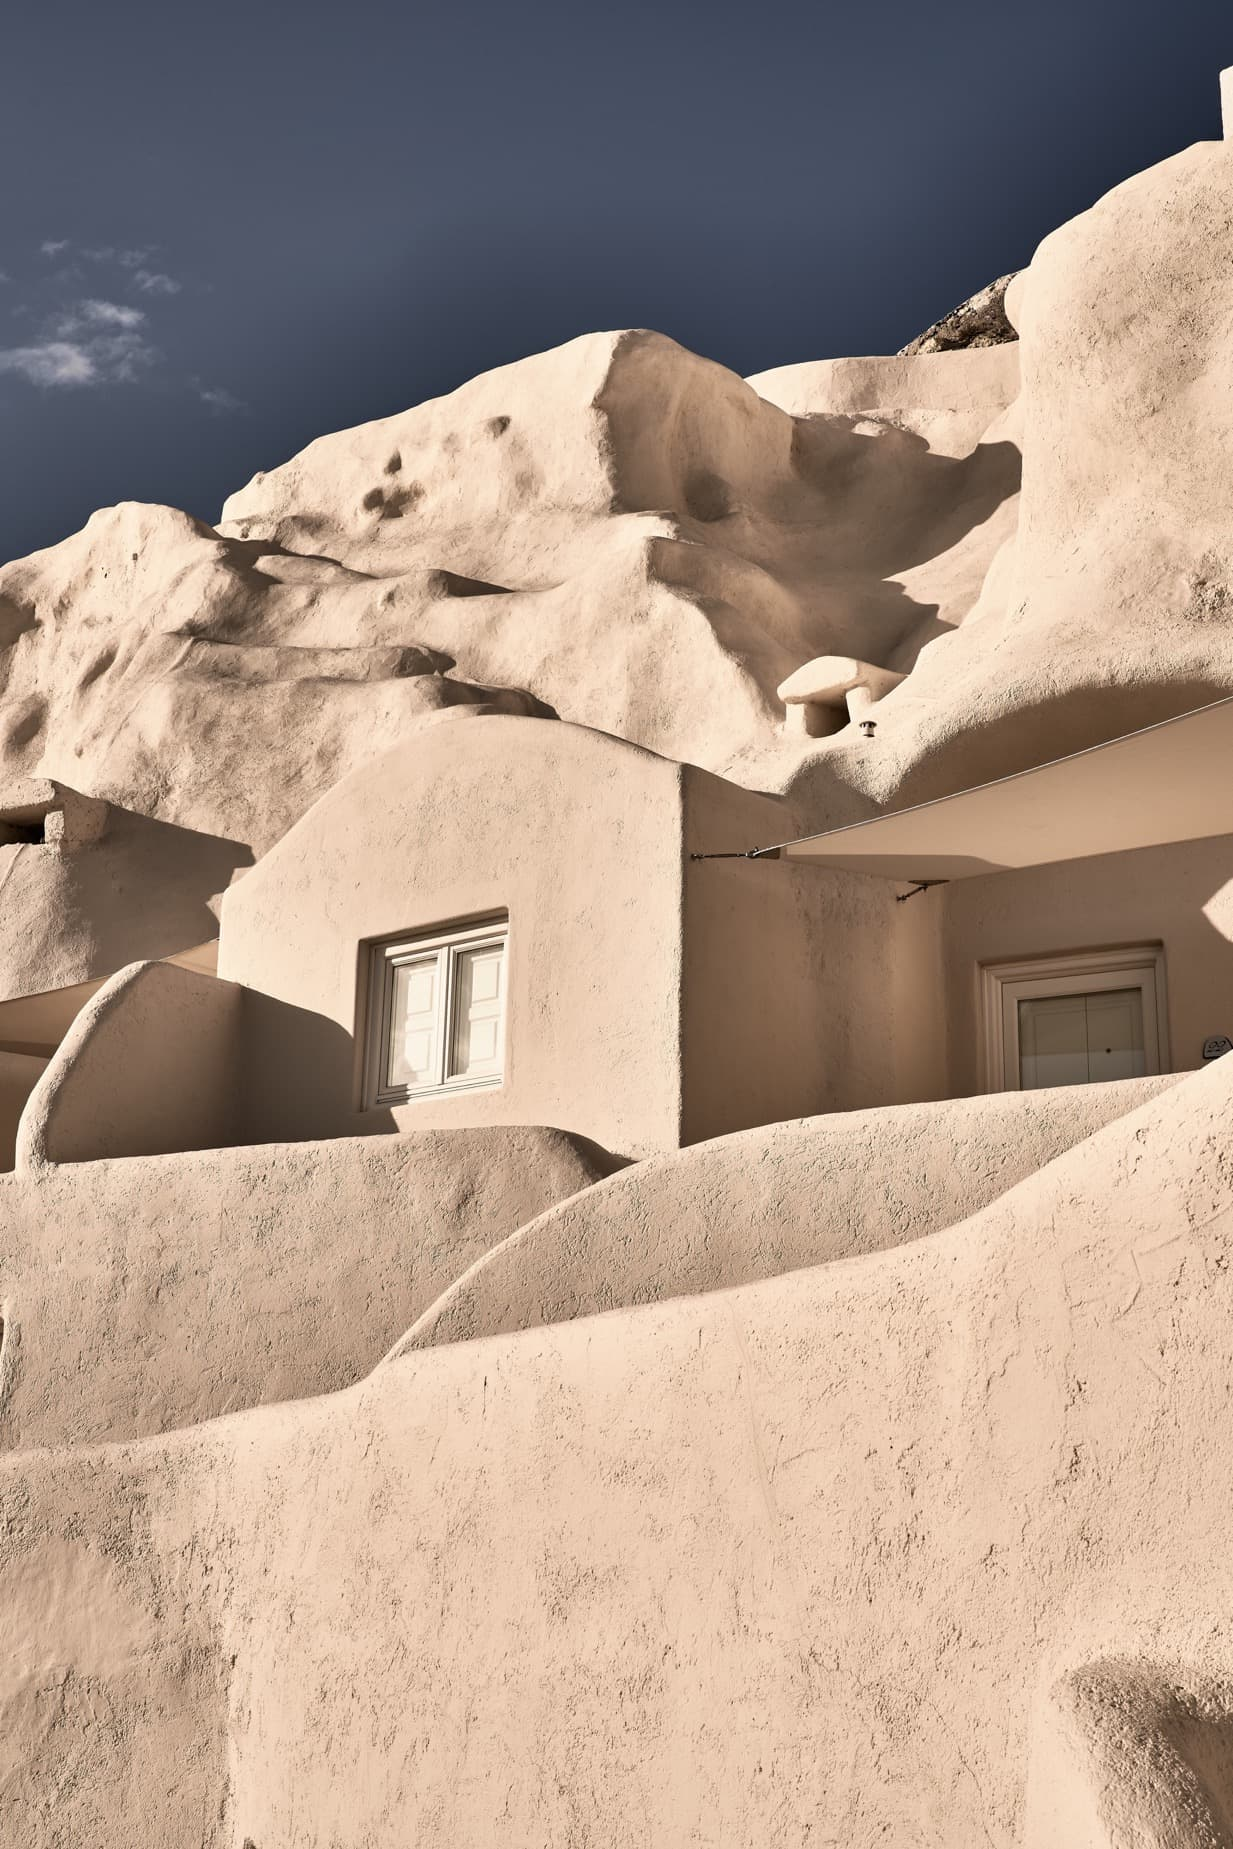 Mystique's 41 suites and villas are carved into the rugged caldera cliffs of Oia